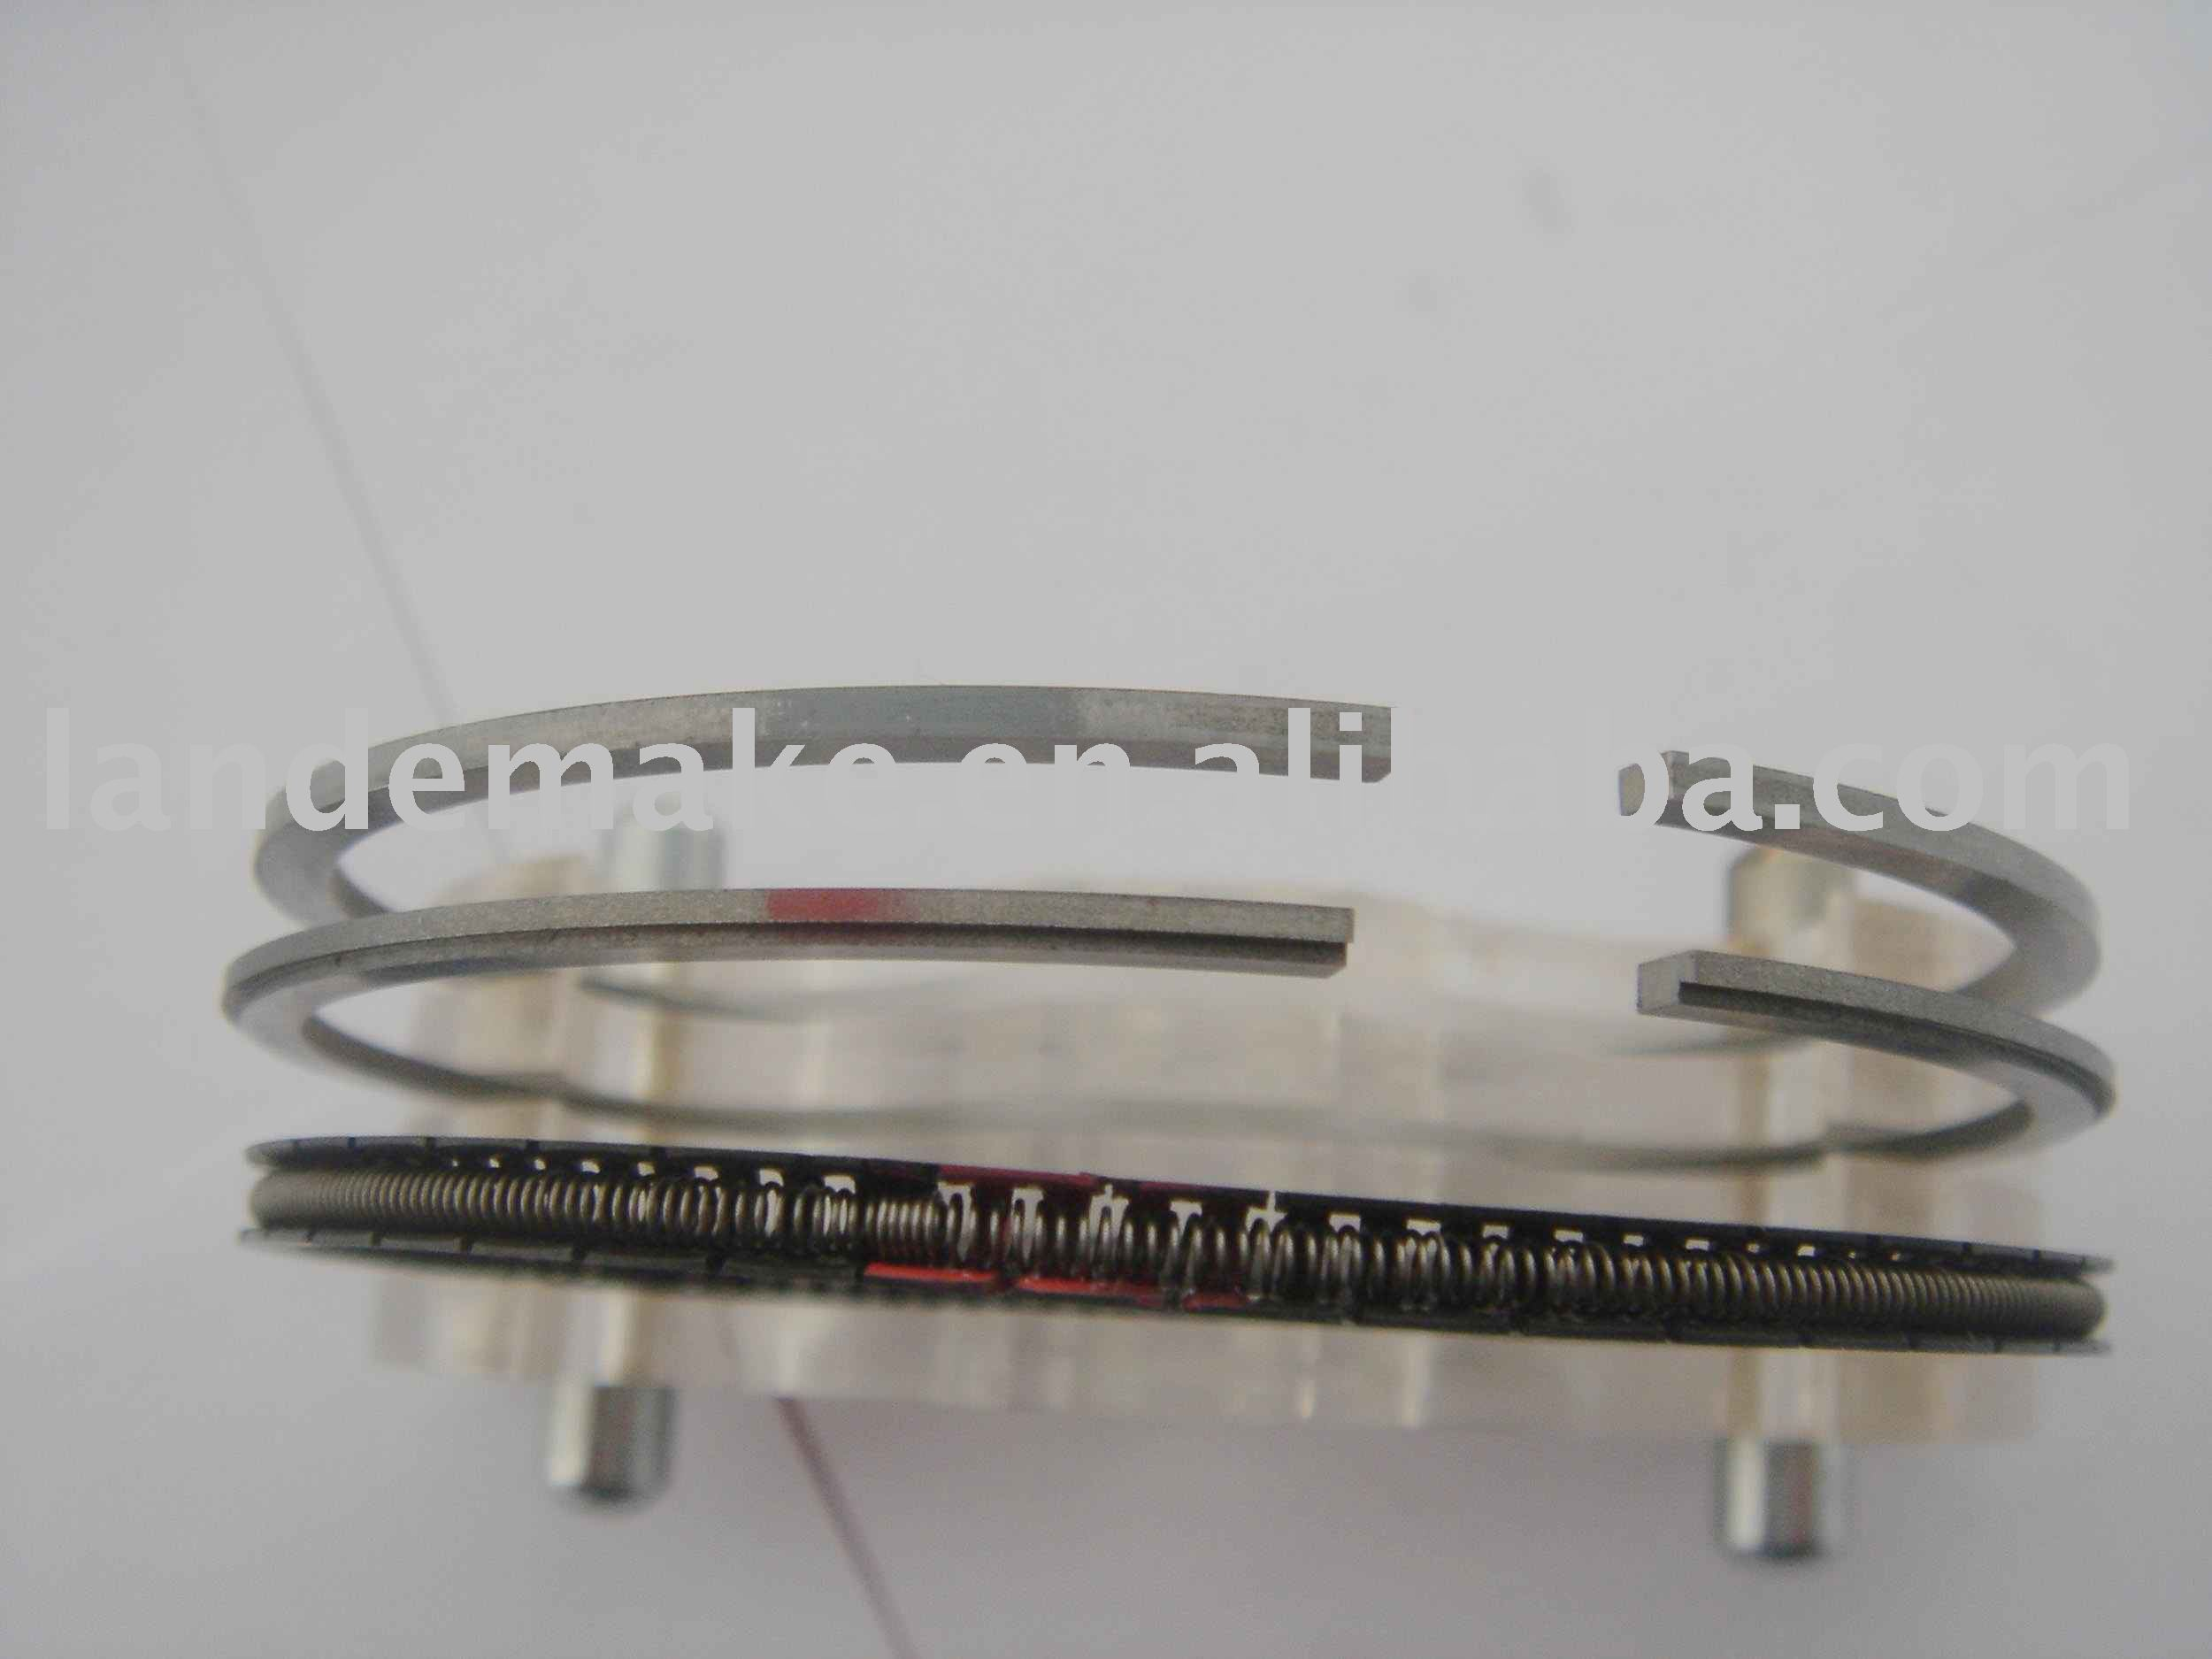 Peugeot 405 piston ring peugeot 405 piston ring suppliers and manufacturers at alibaba com